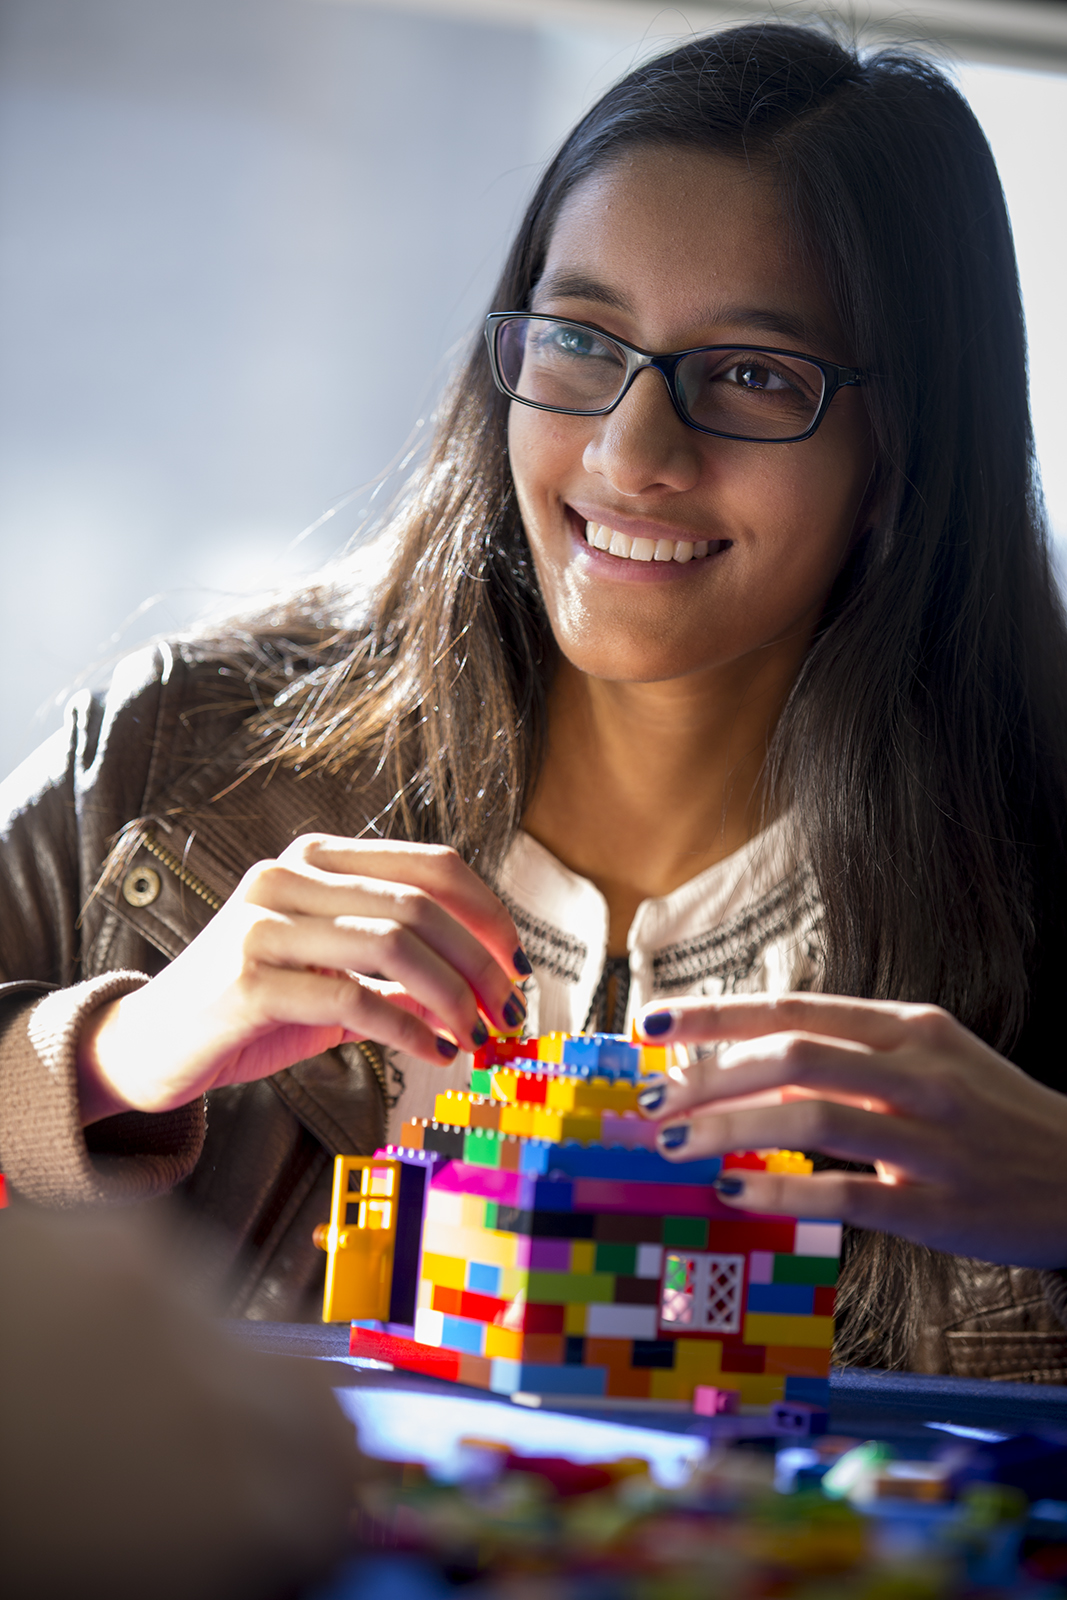 Student with Lego